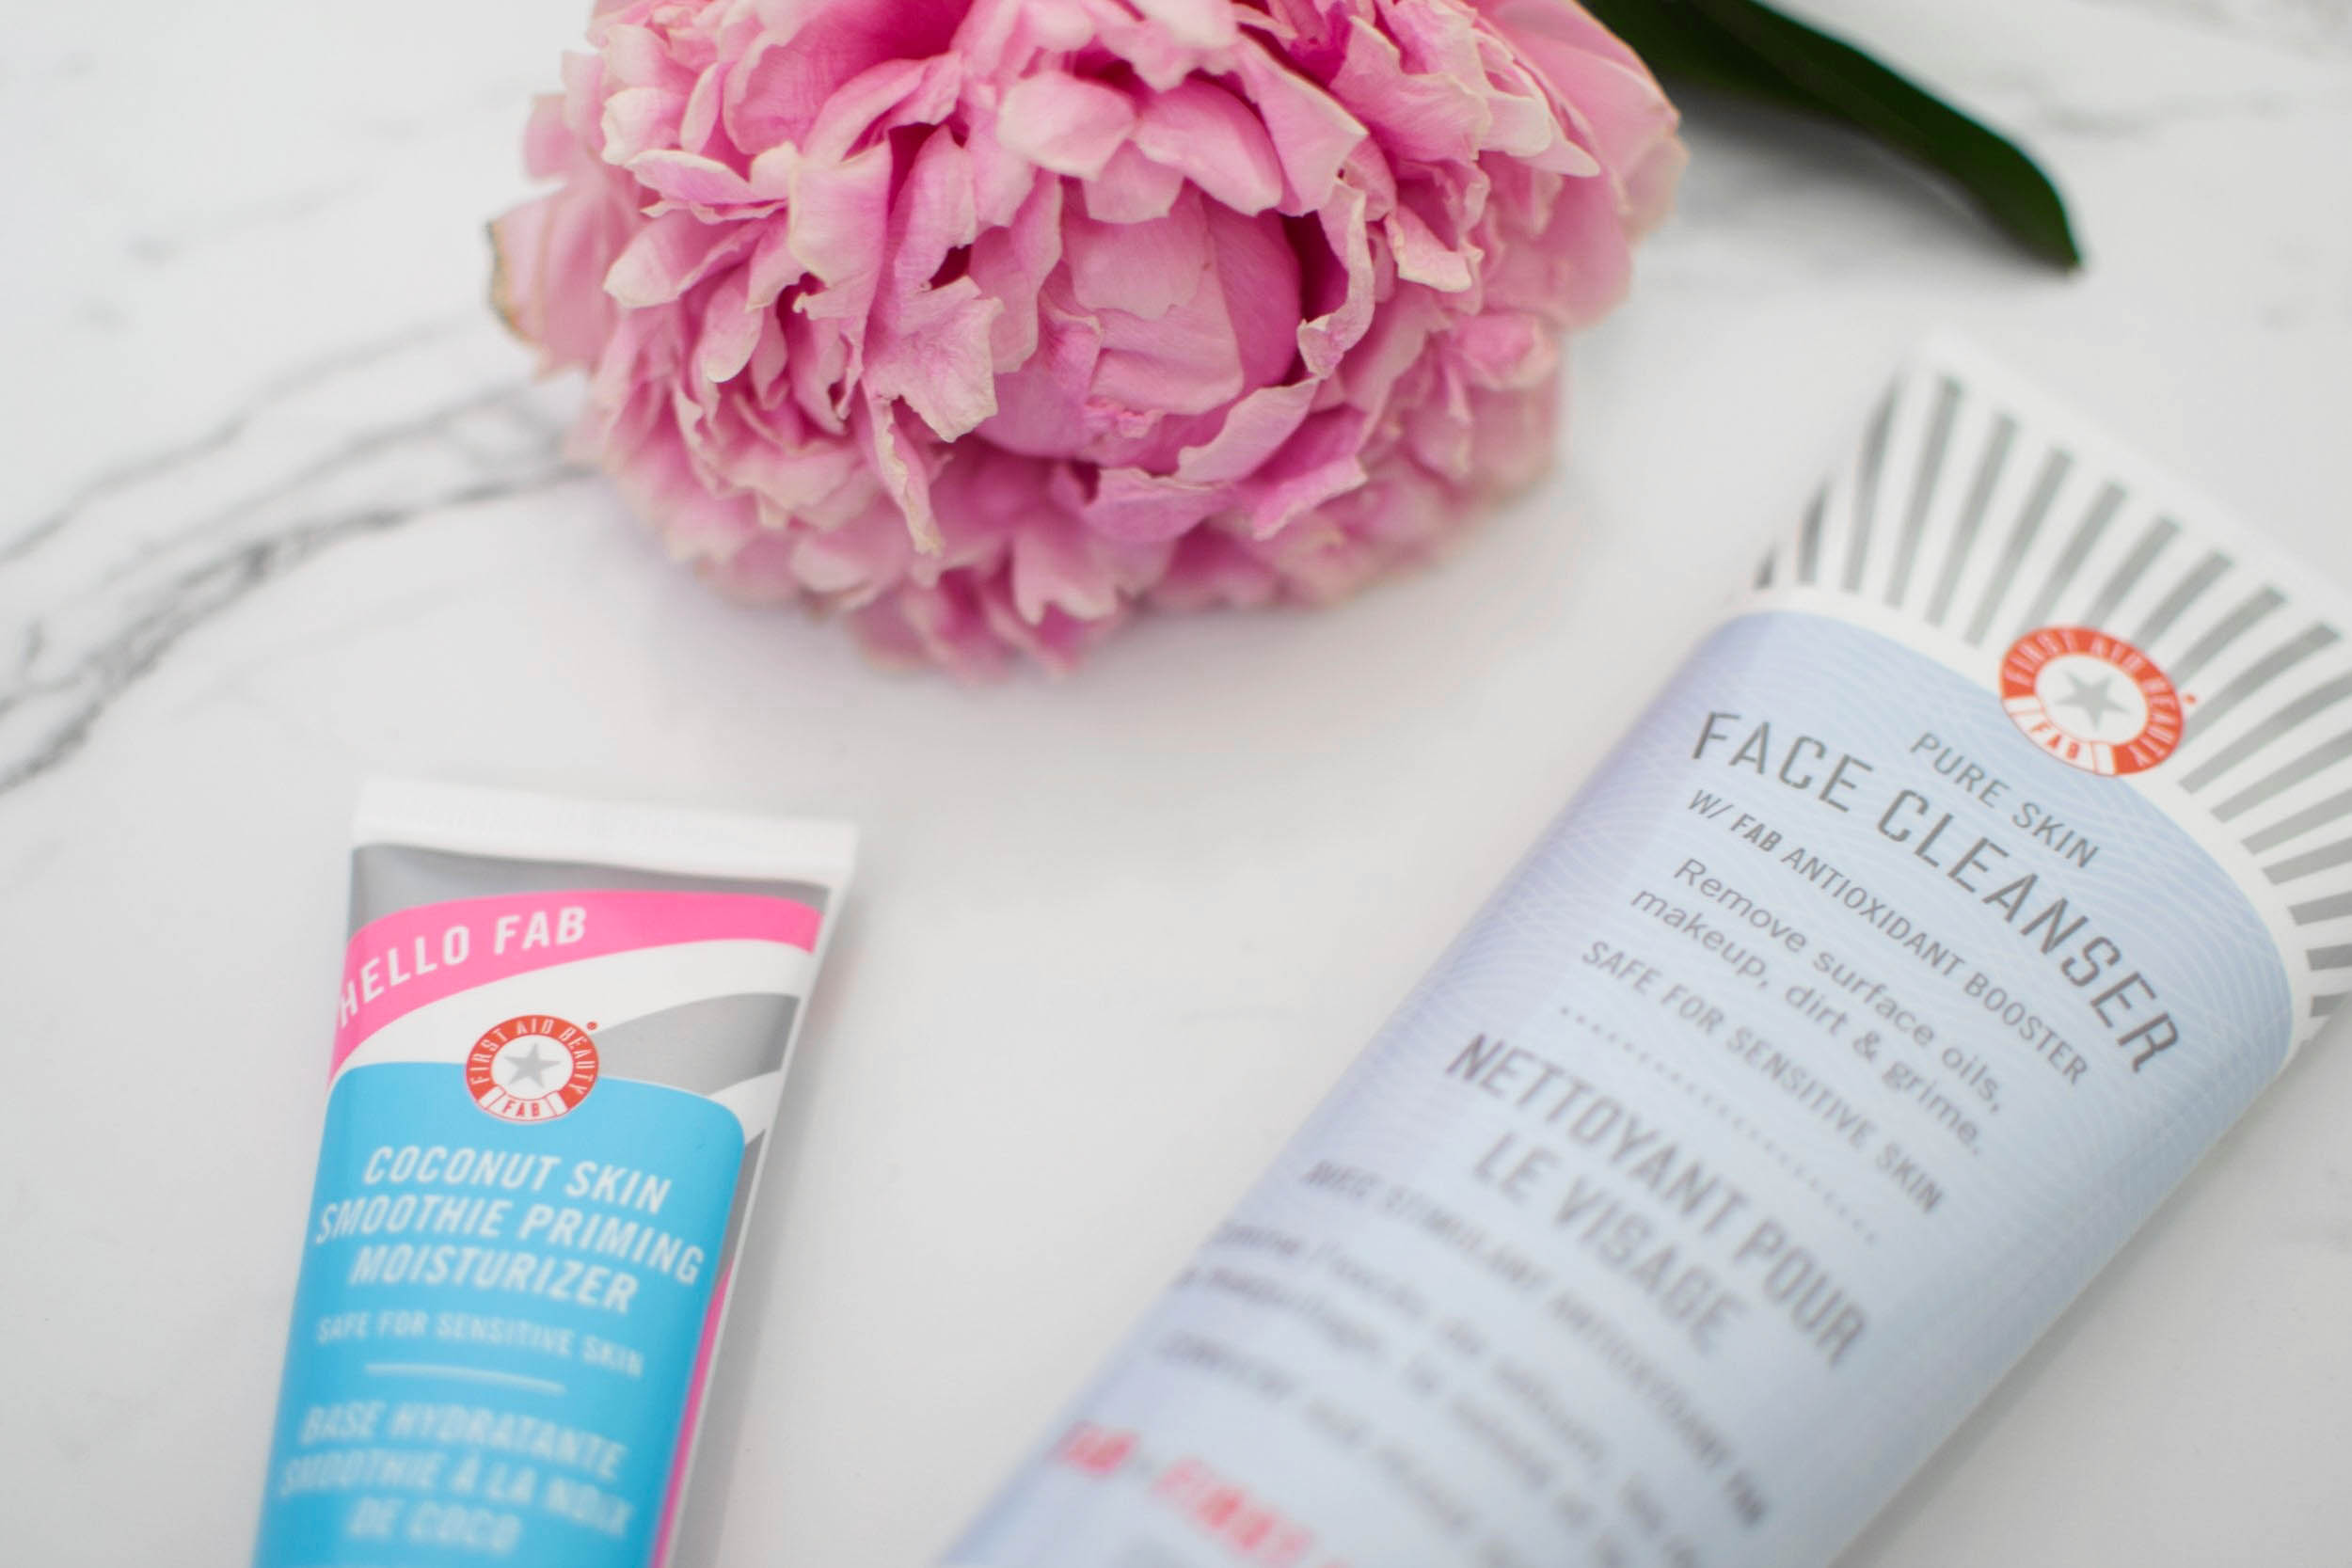 first aid beauty pure skin face cleanser review / beauty talk / beauty review